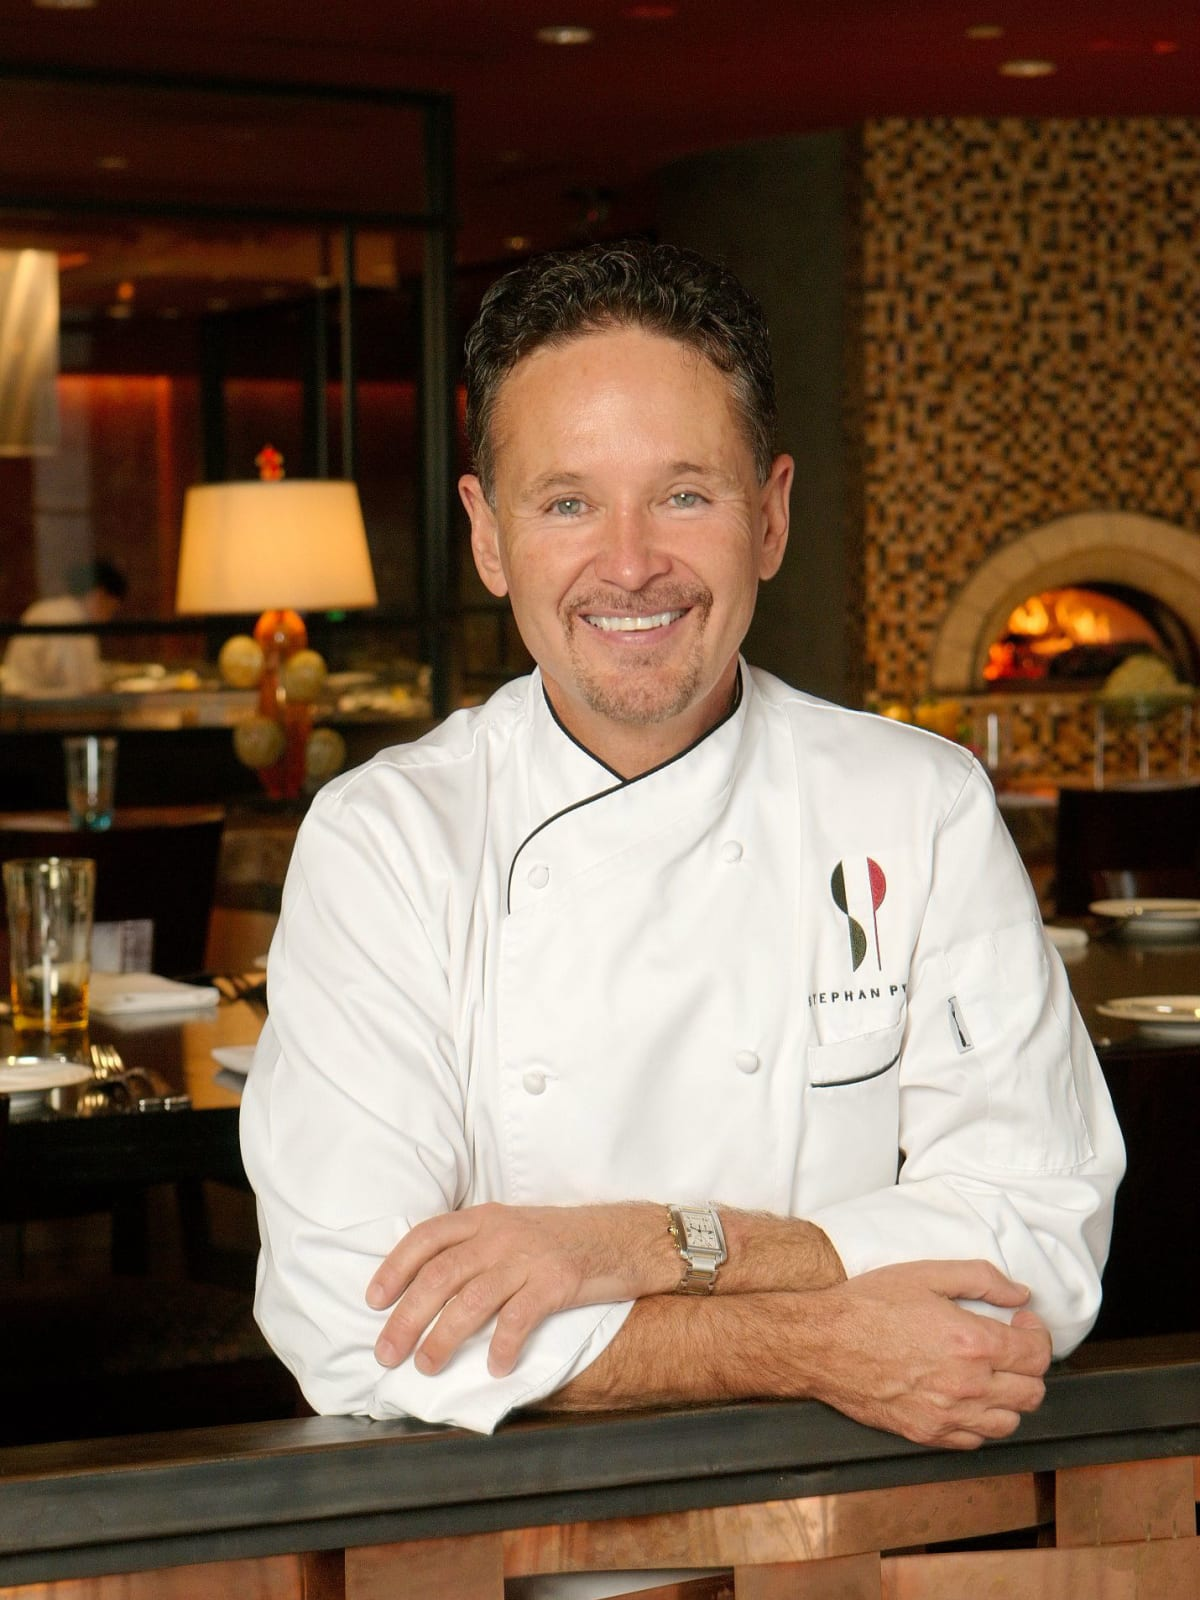 Dallas star chef Stephan Pyles